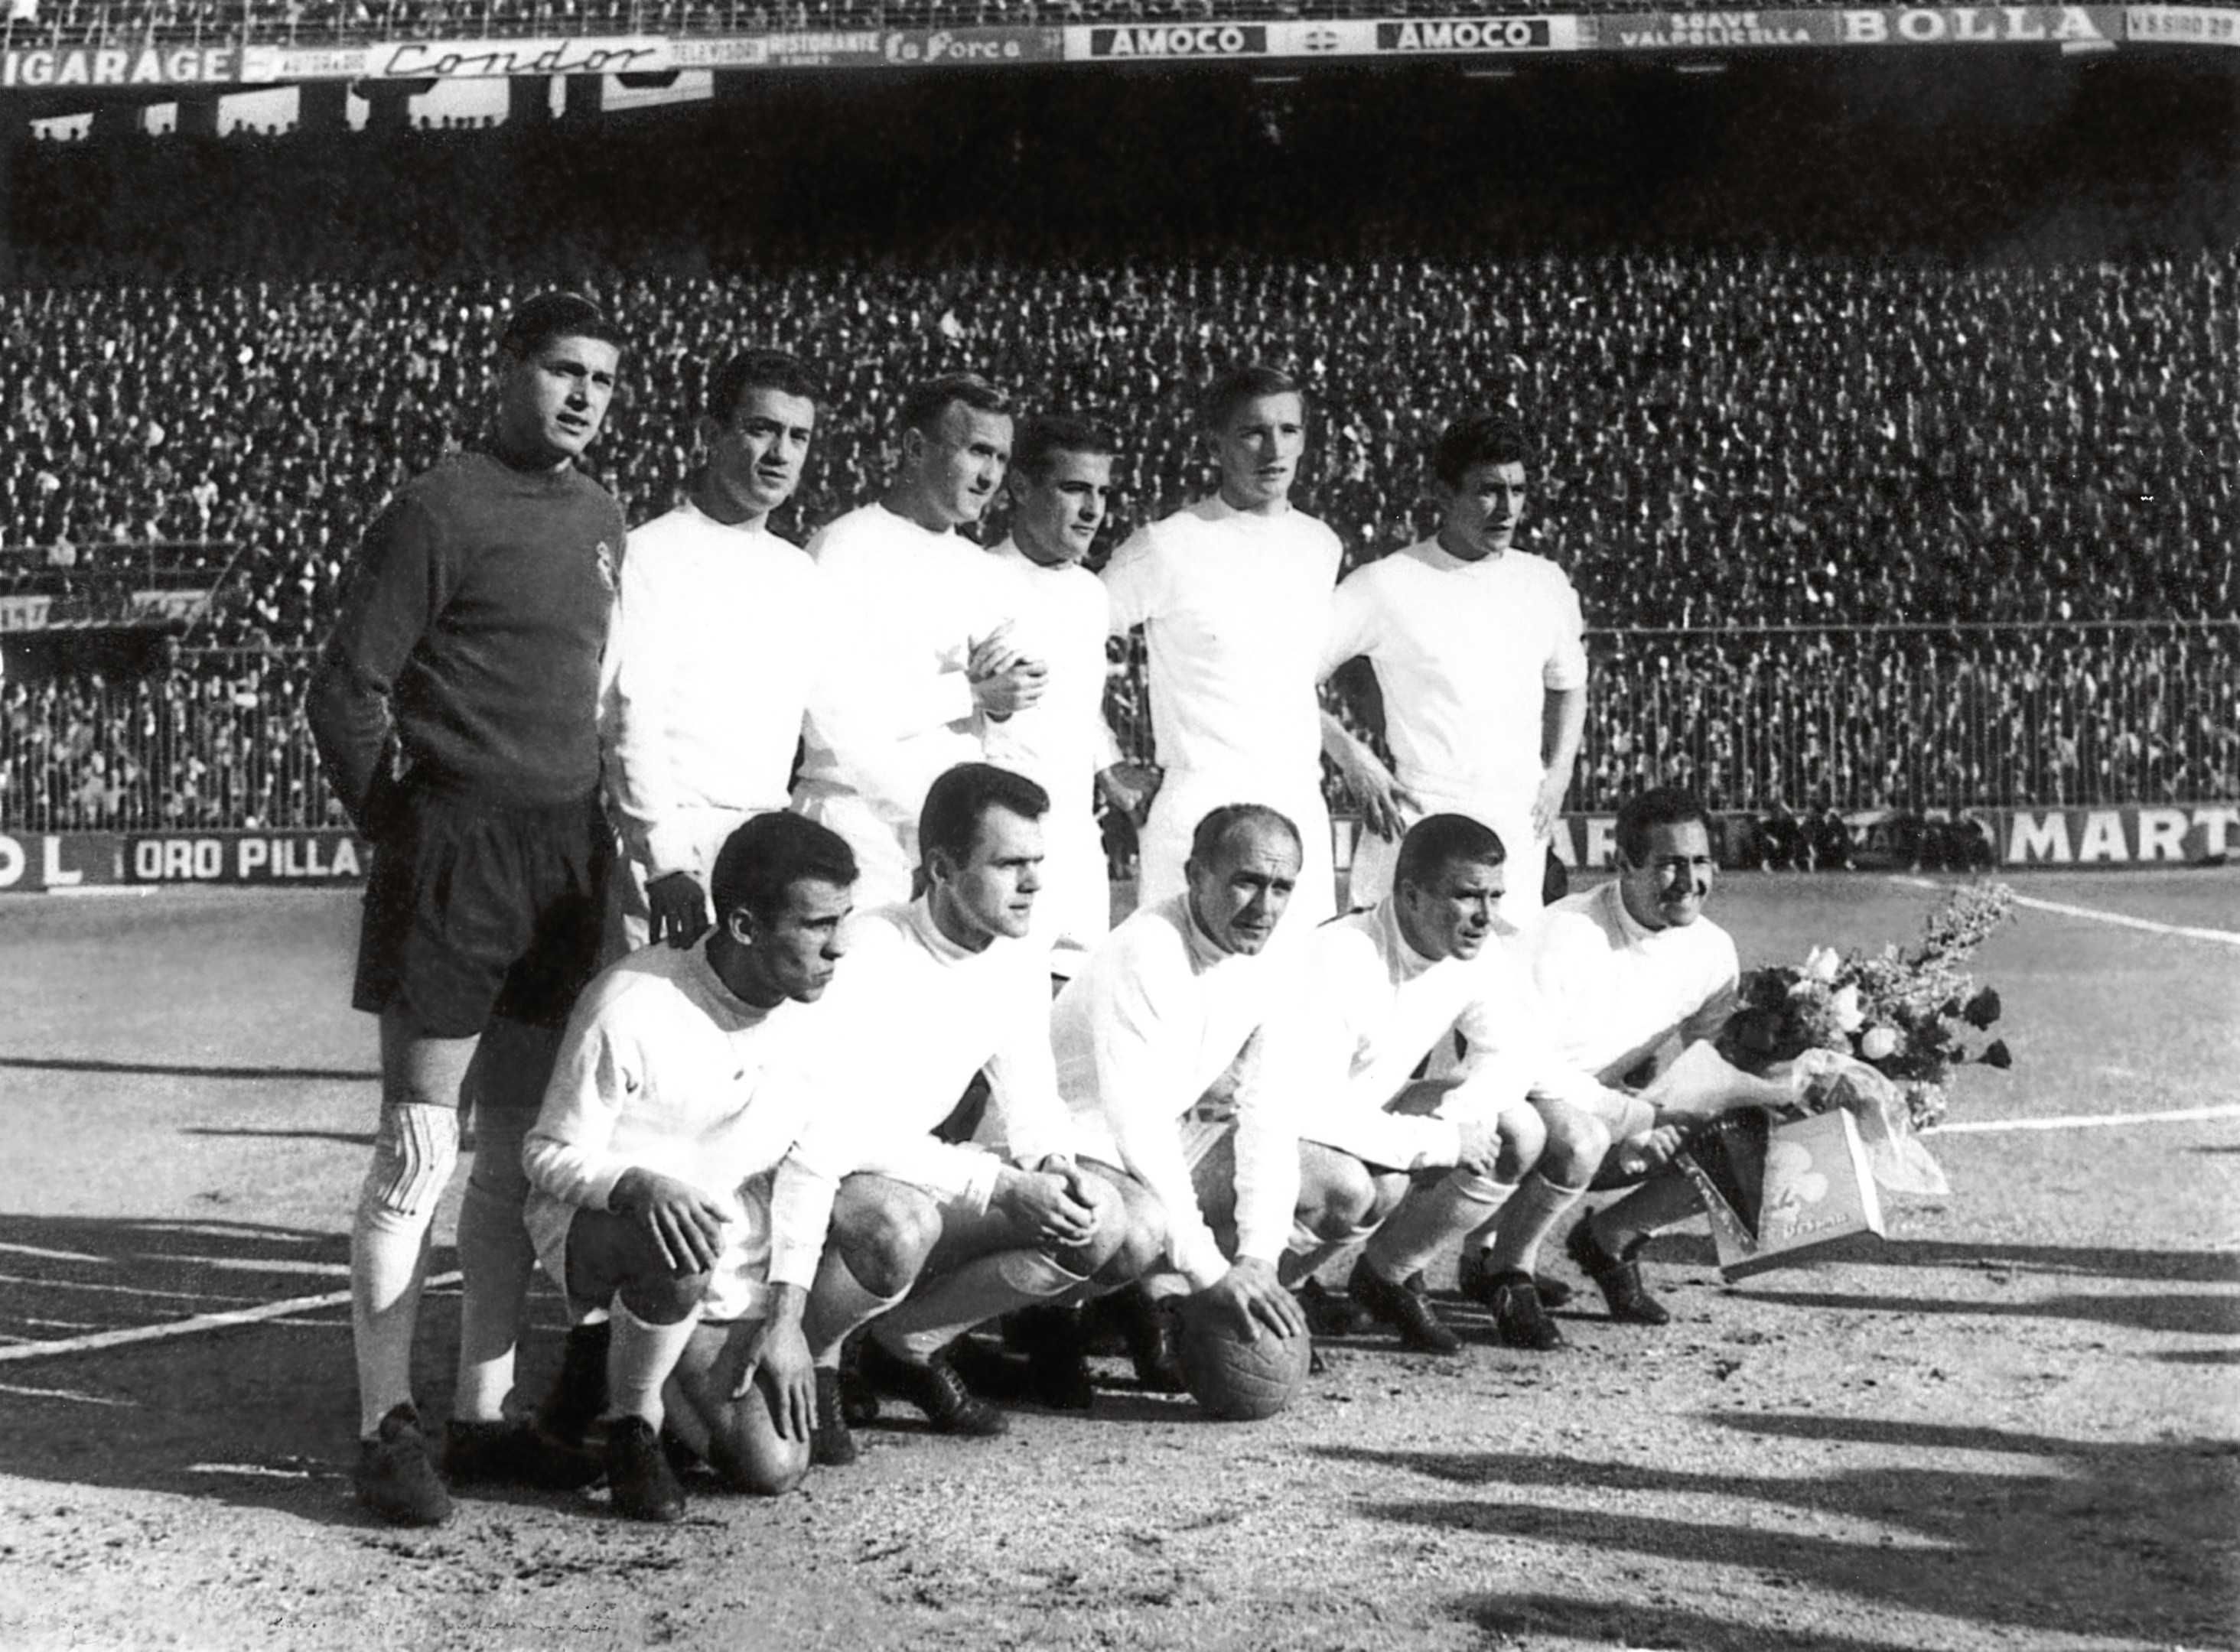 Real Madrid pictured just before beating Eintracht Frankfurt in the European Cup Final at Hampden Park in 1960